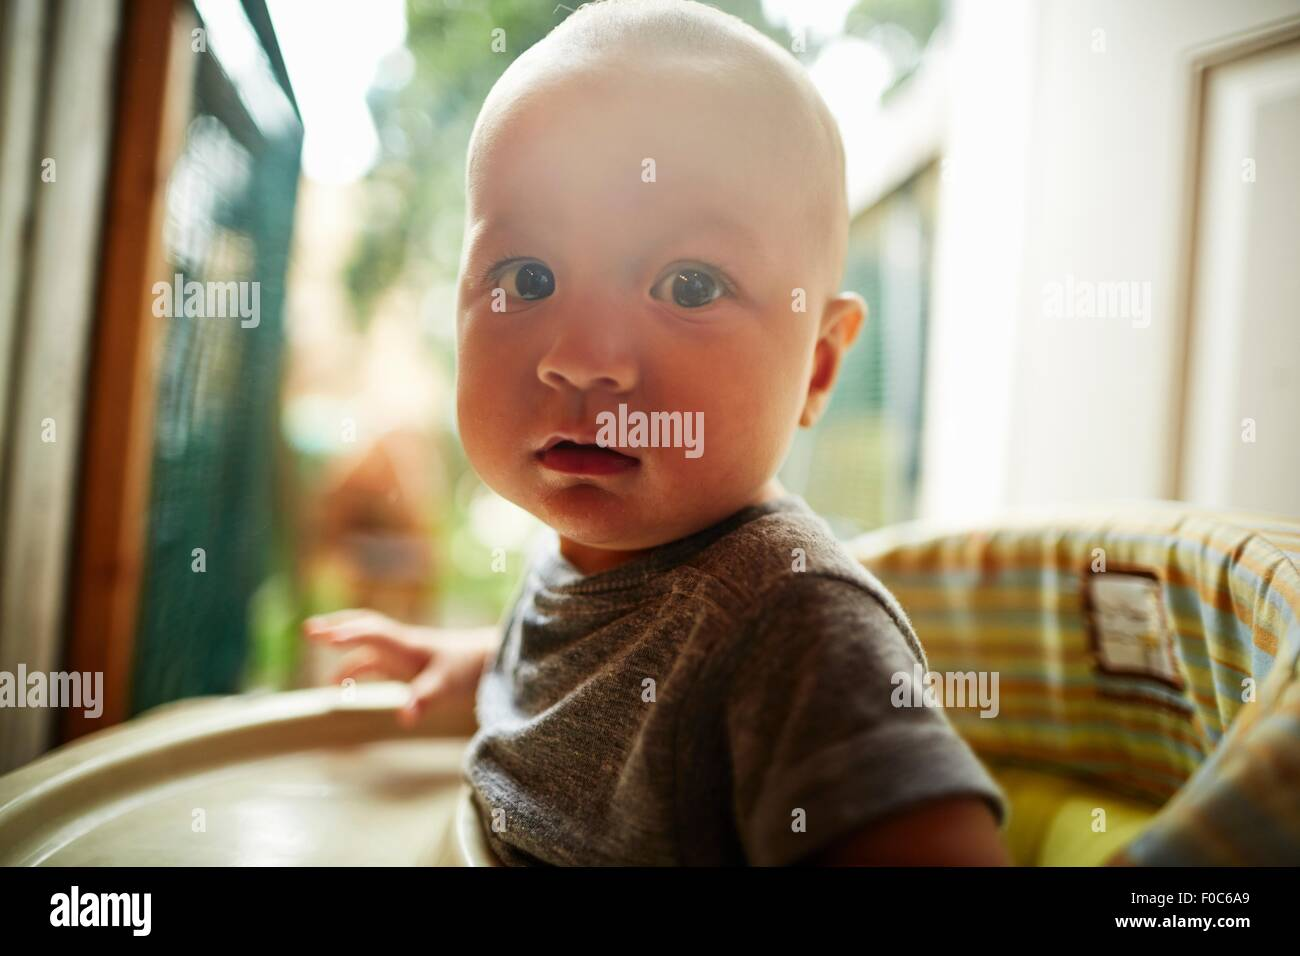 Portrait of baby boy looking at camera sitting in high chair - Stock Image